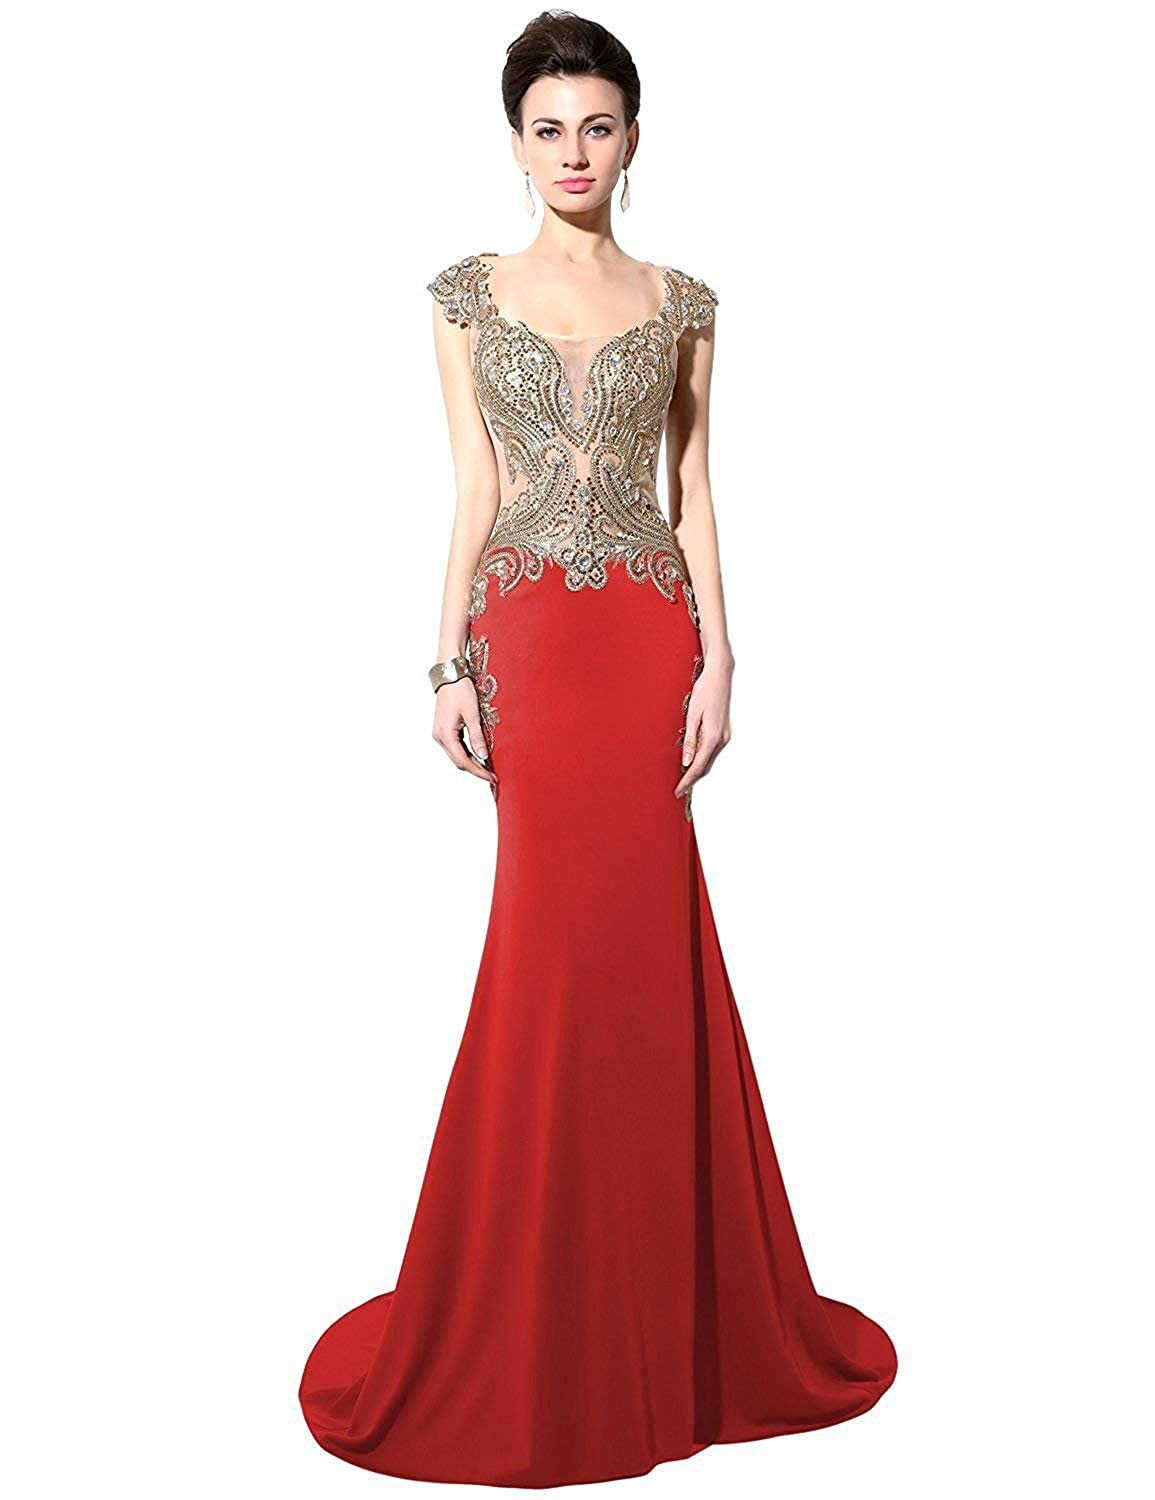 003red Sarahbridal Women's Mermaid Evening Ball Dress 2019 Formal Long Prom Gowns